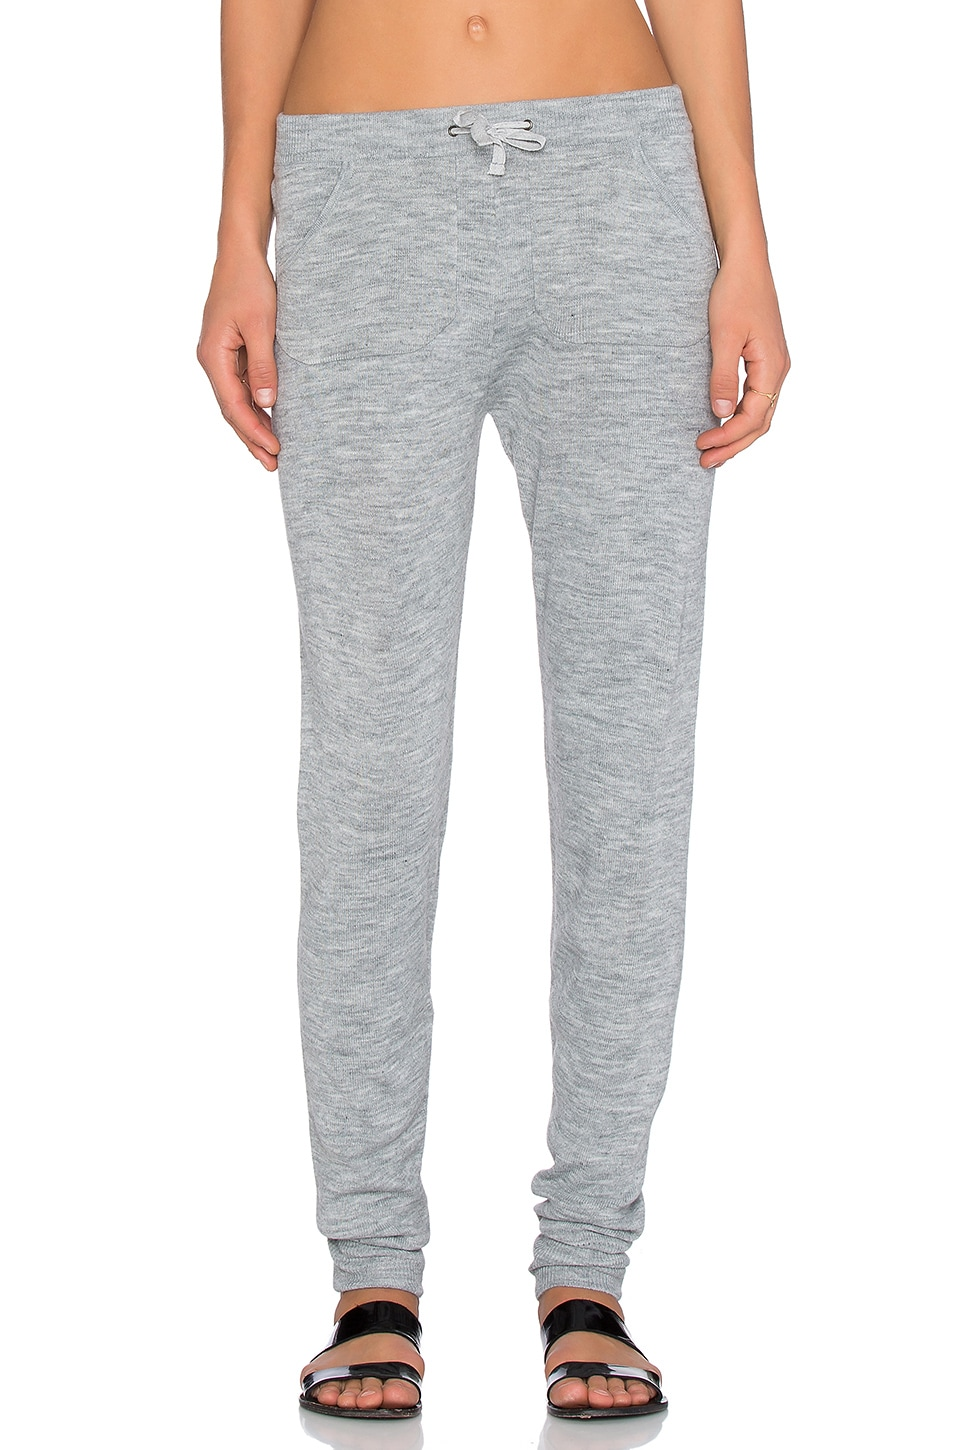 Plush Sweater Legging in Heather Grey